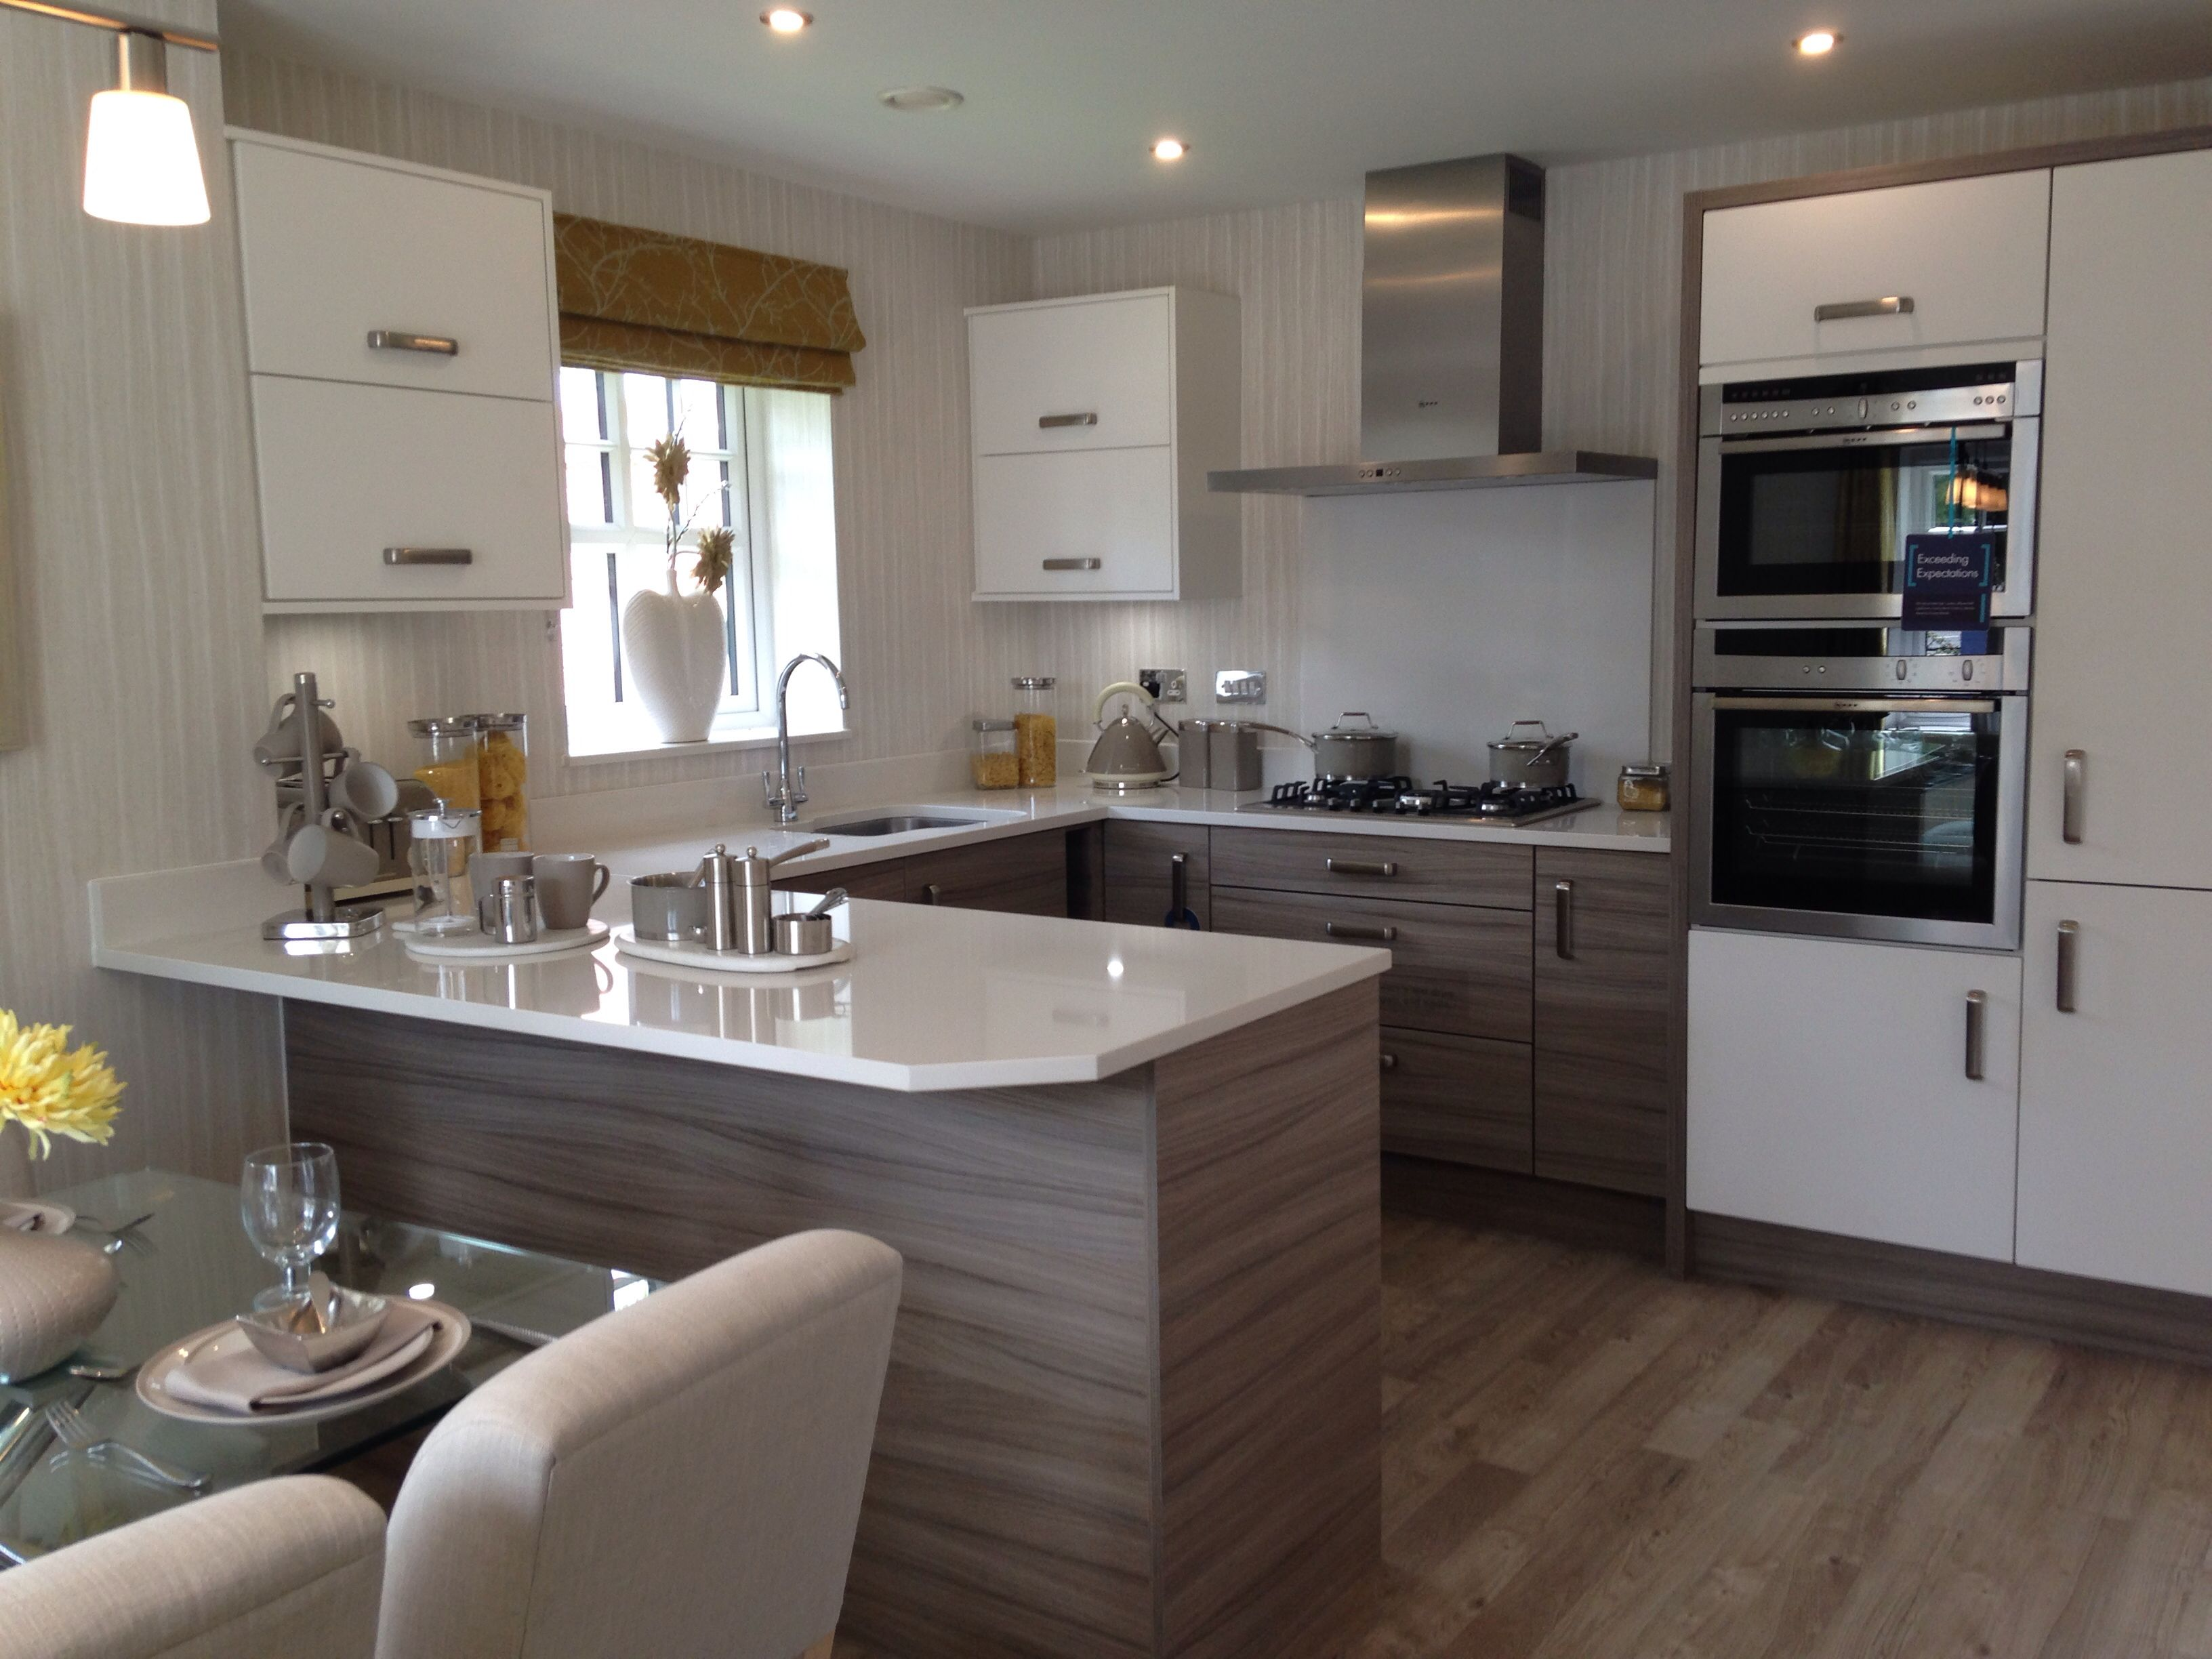 Morris show home kitchen